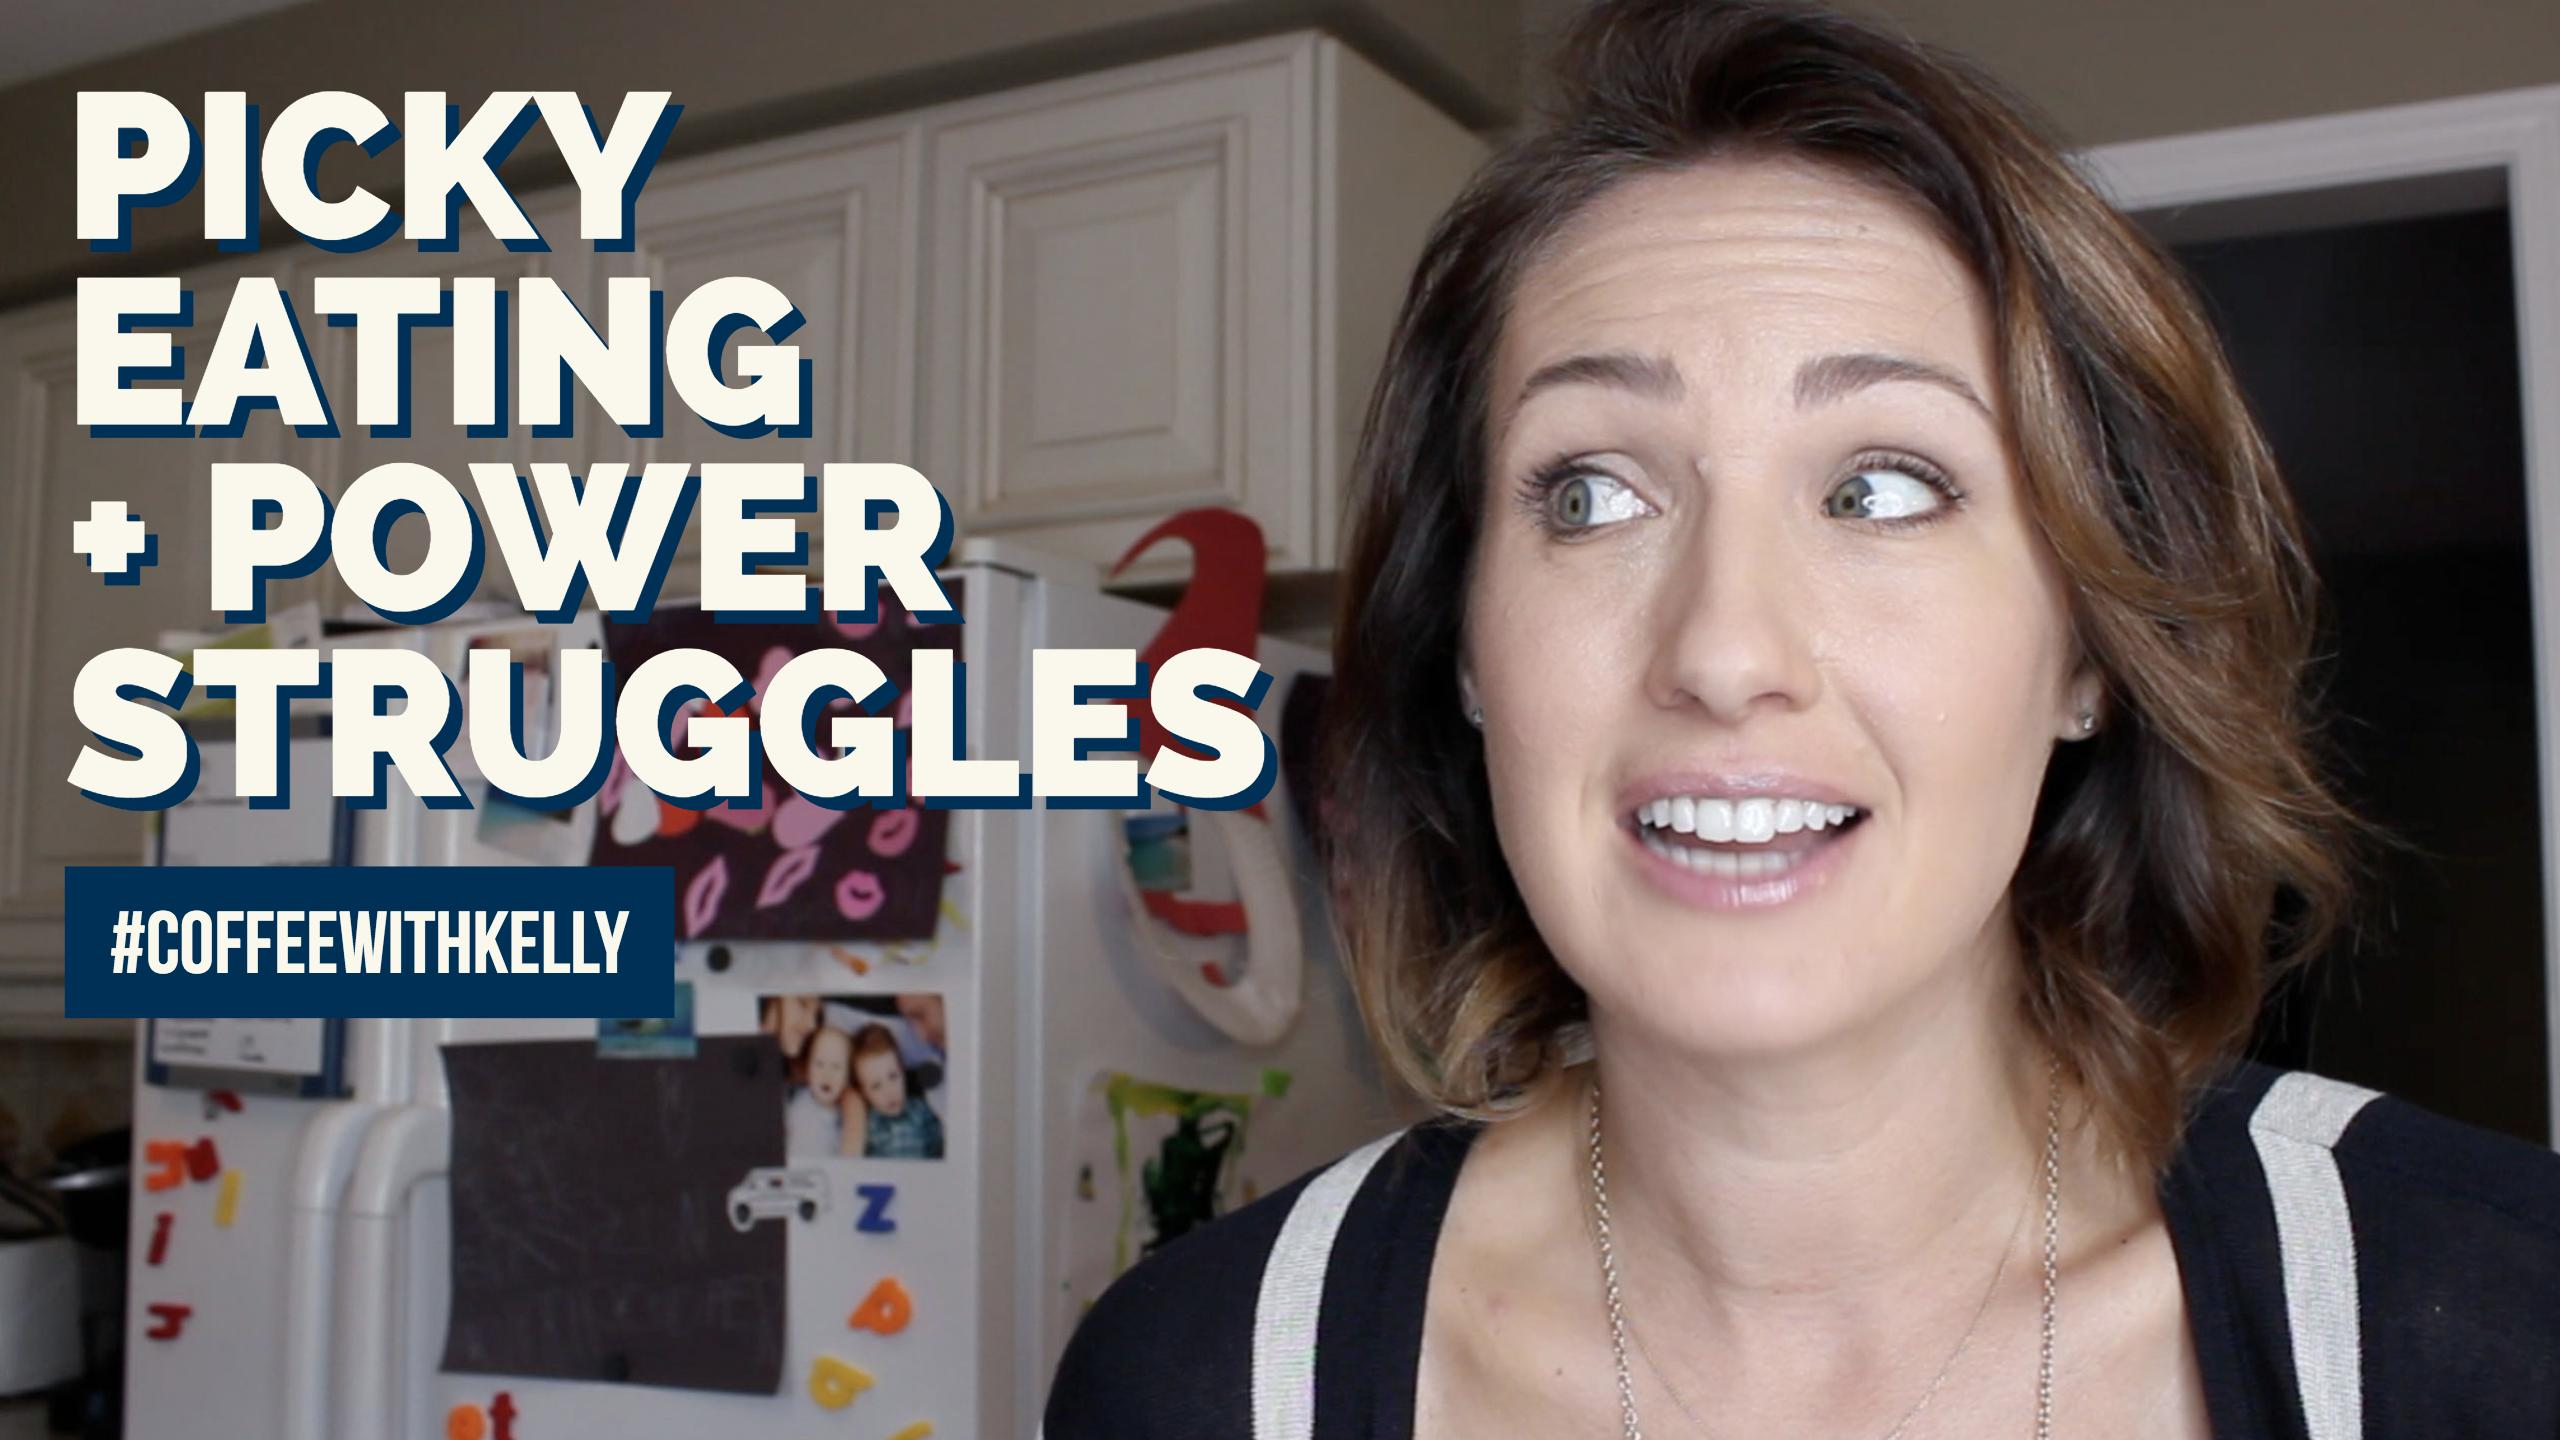 Picky Eating + Power Struggles | #coffeewithkelly